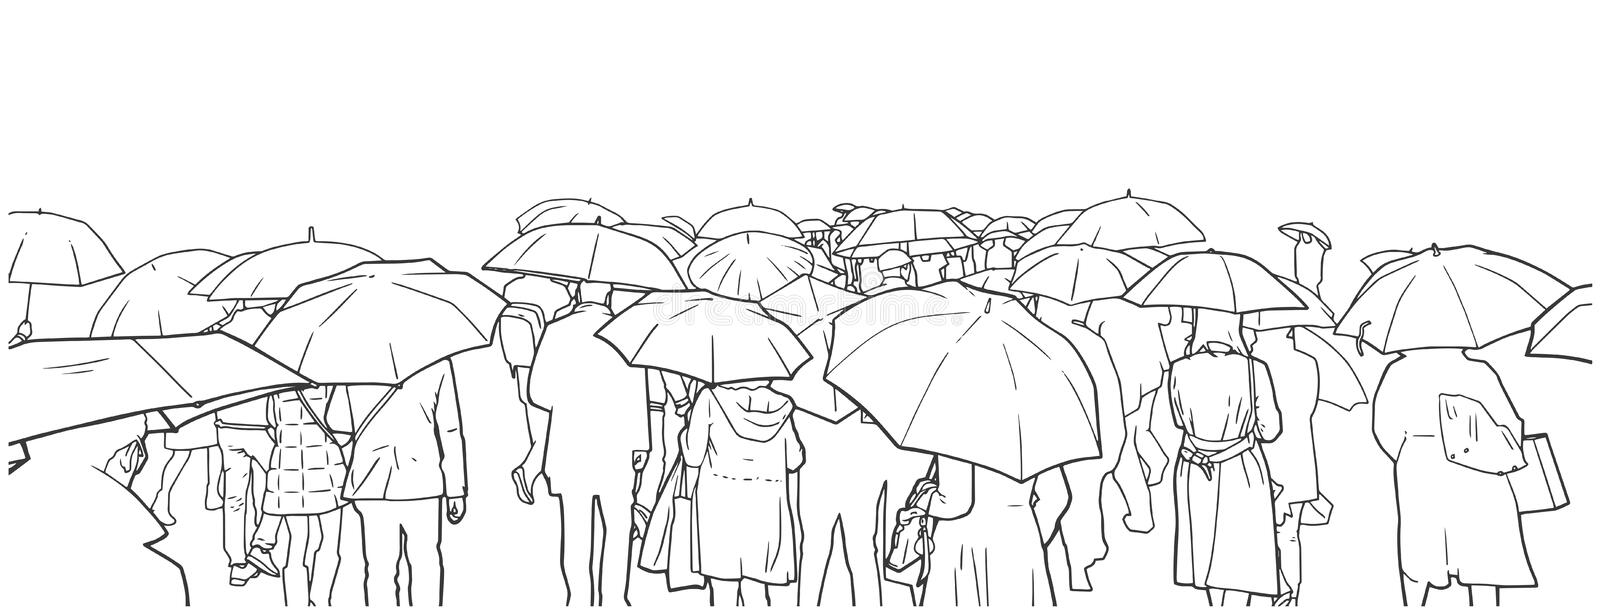 Illustration of crowd of people waiting at street crossing in the rain with rain coats and umbrellas vector illustration